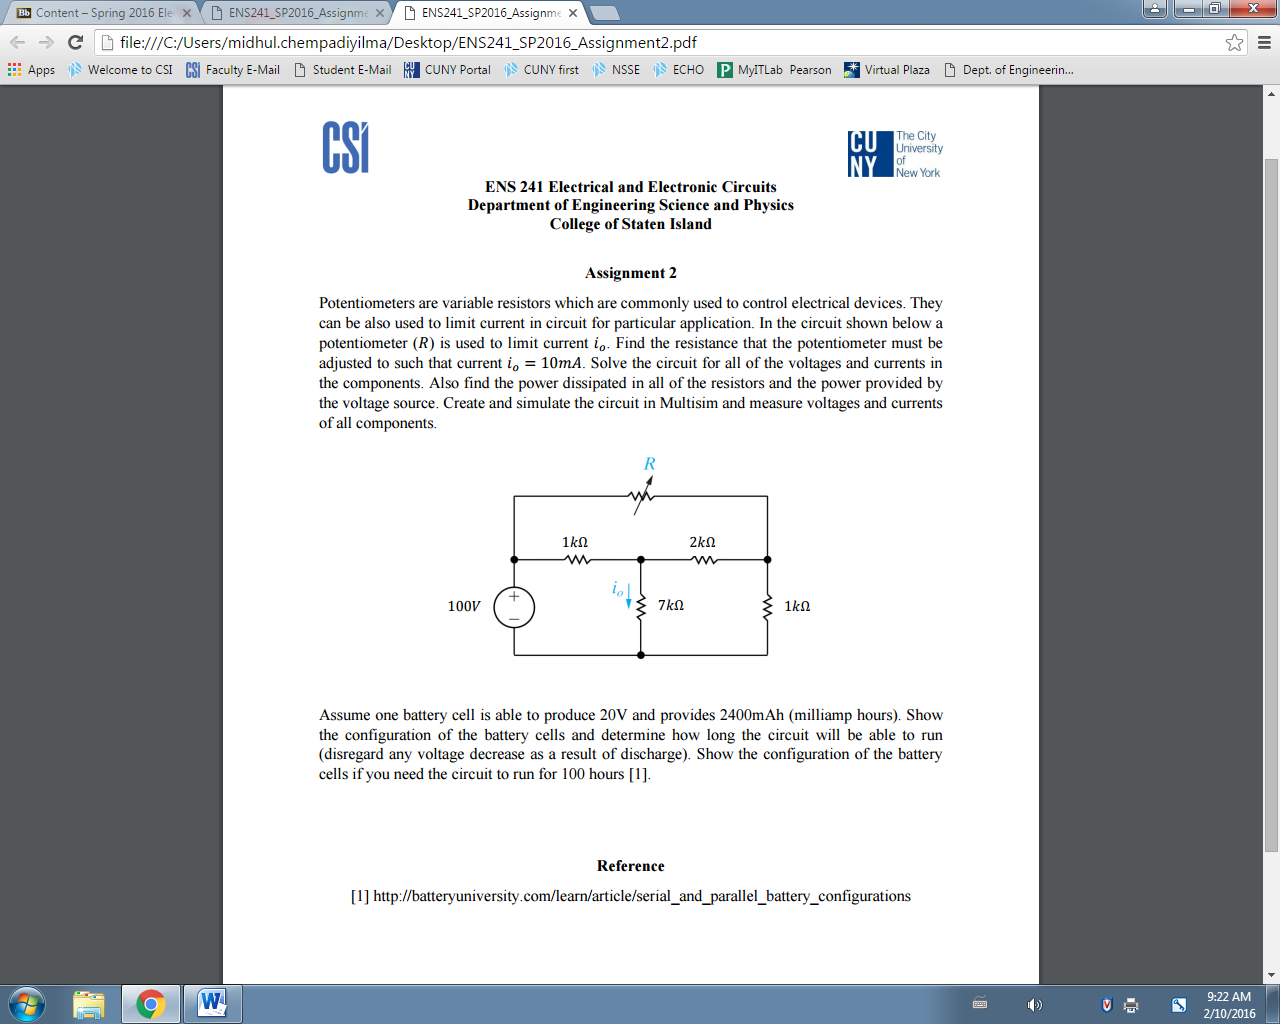 Solved Ens241 Sp2016 Assignme X D Electronic Circuits And Systems Pdf Question Bb Spring 2016 El C File Users Midhulchempad